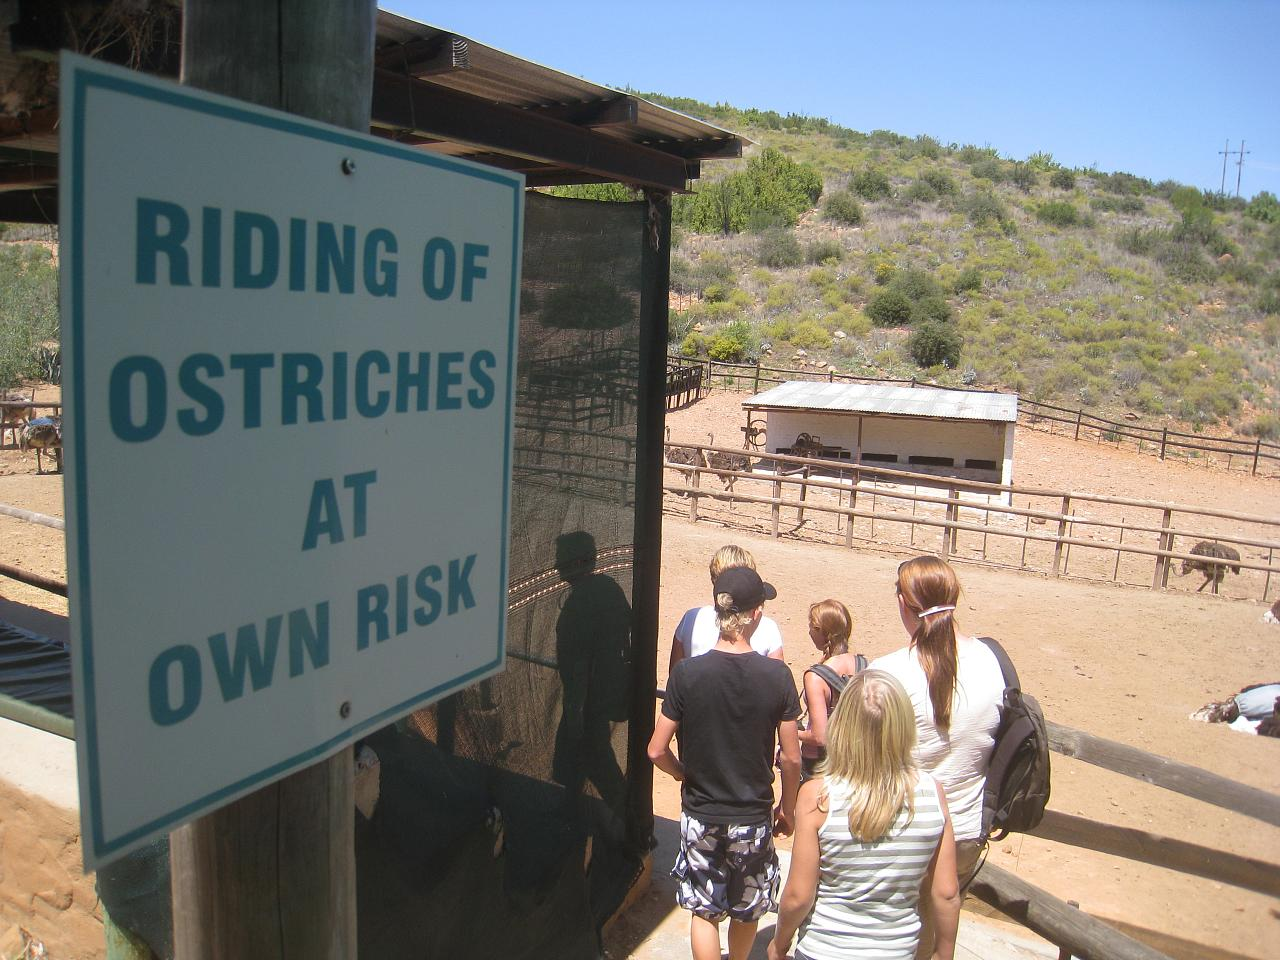 Riding of Ostriches at Own Risk - Outdshorn